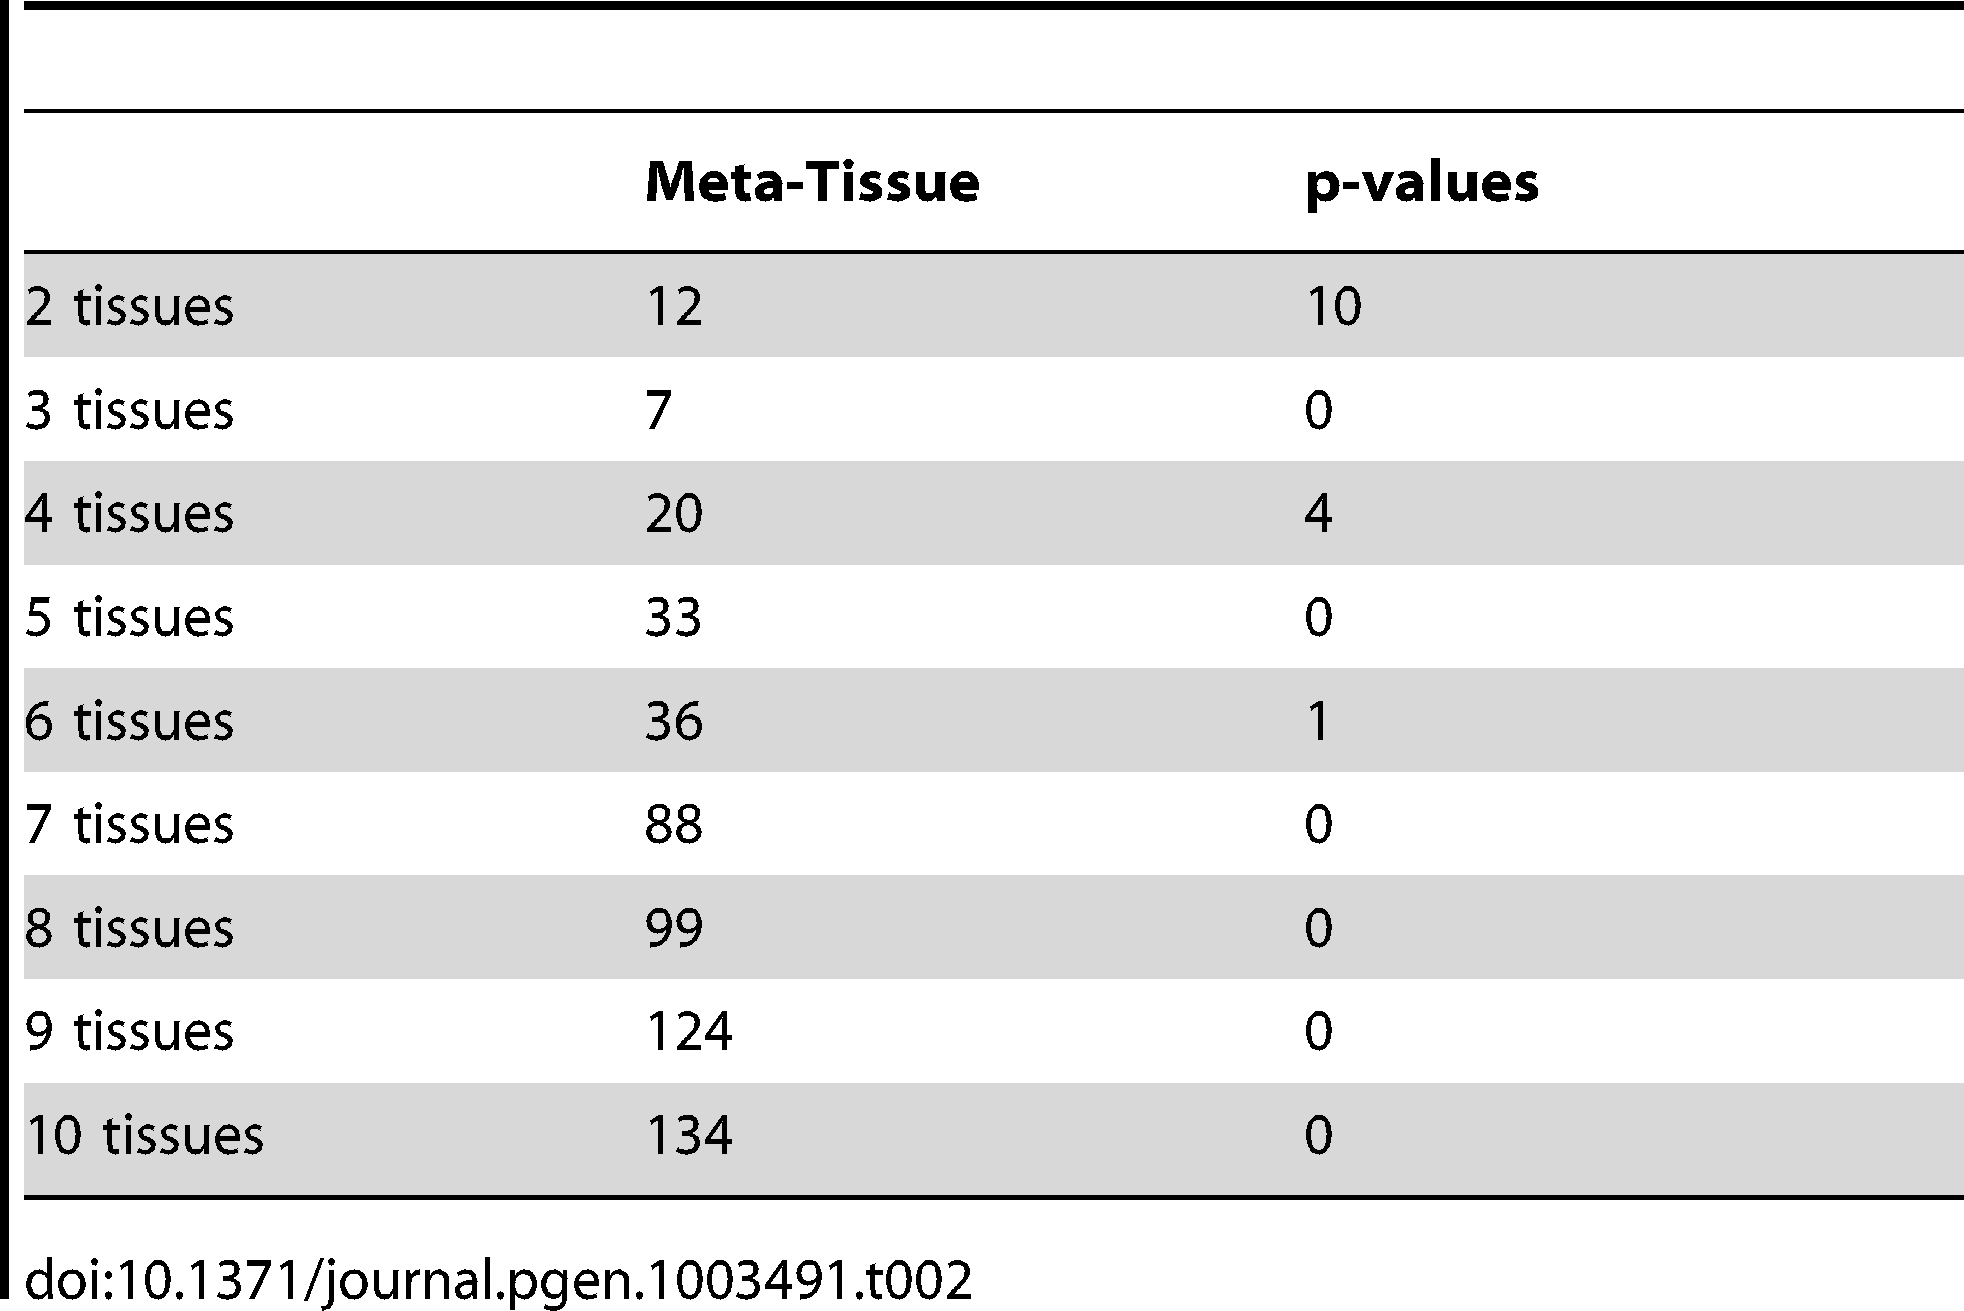 The number of eQTLs predicted to have effects by Meta-Tissue and the p-value approach across different numbers of tissues considered in the ten tissue dataset (eQTLs having effects across any two tissues, any three tissues, etc.).